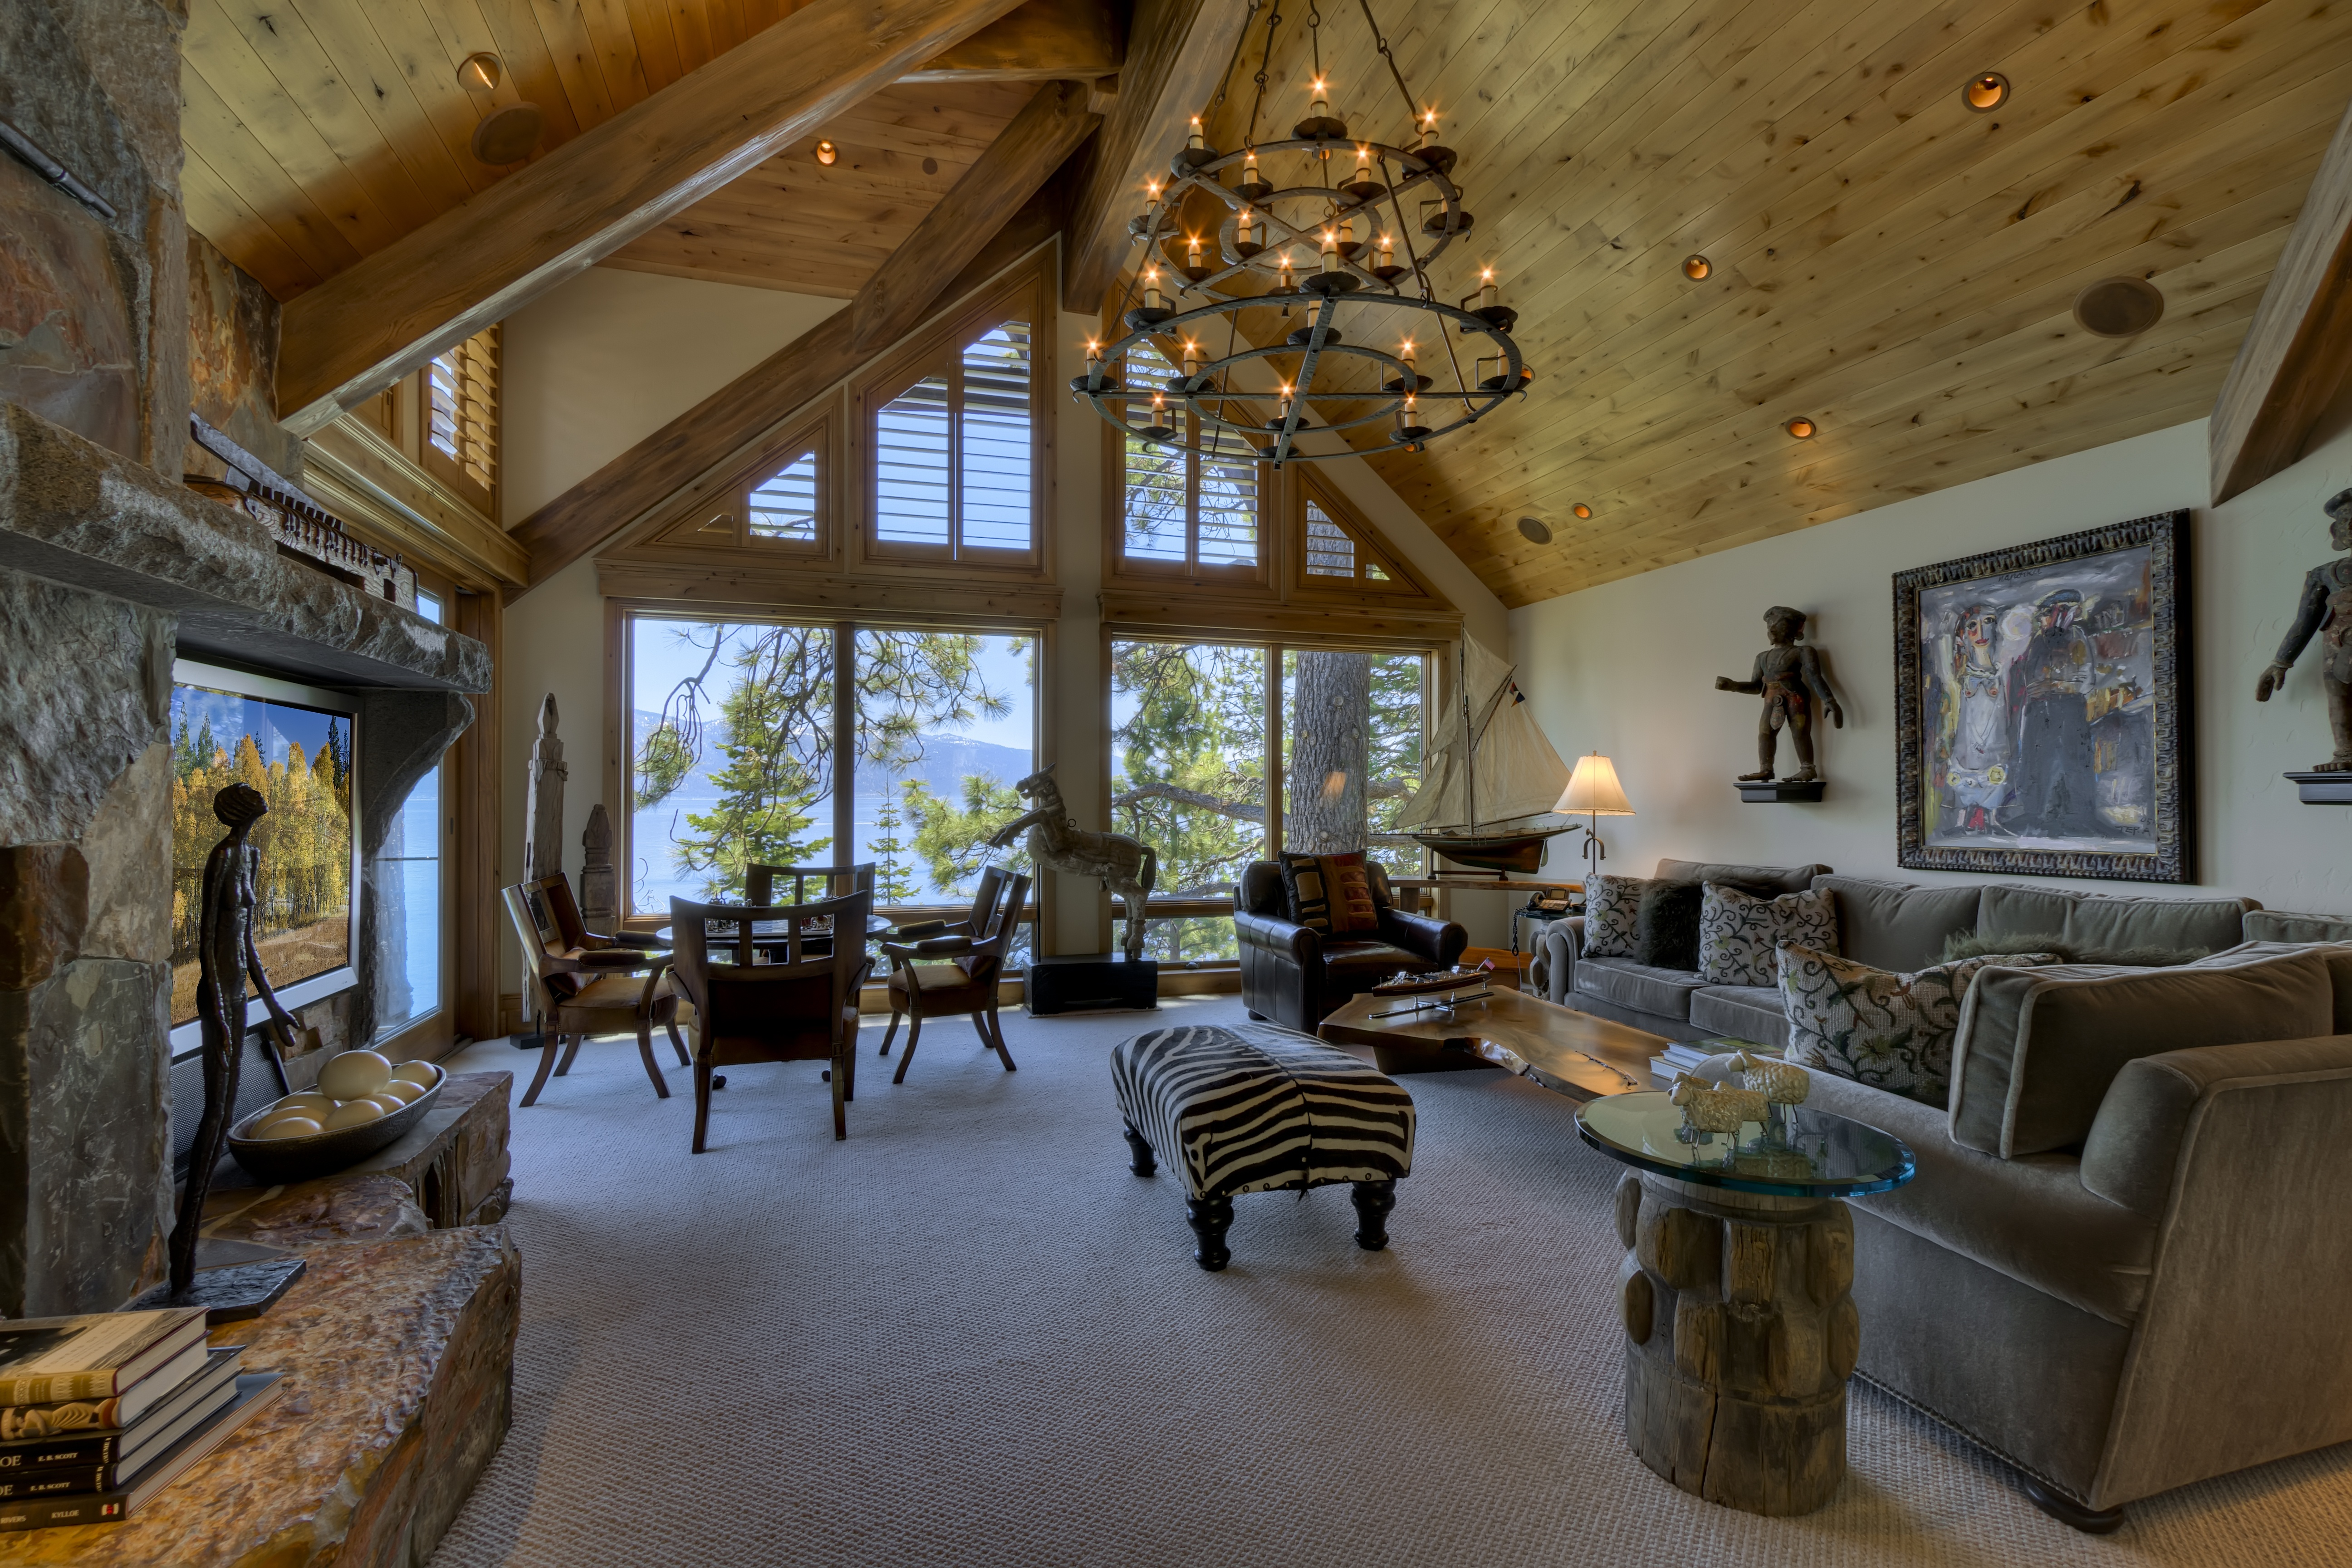 of tahoe vacation city rentals redawning cabins lake property south in rental luxury